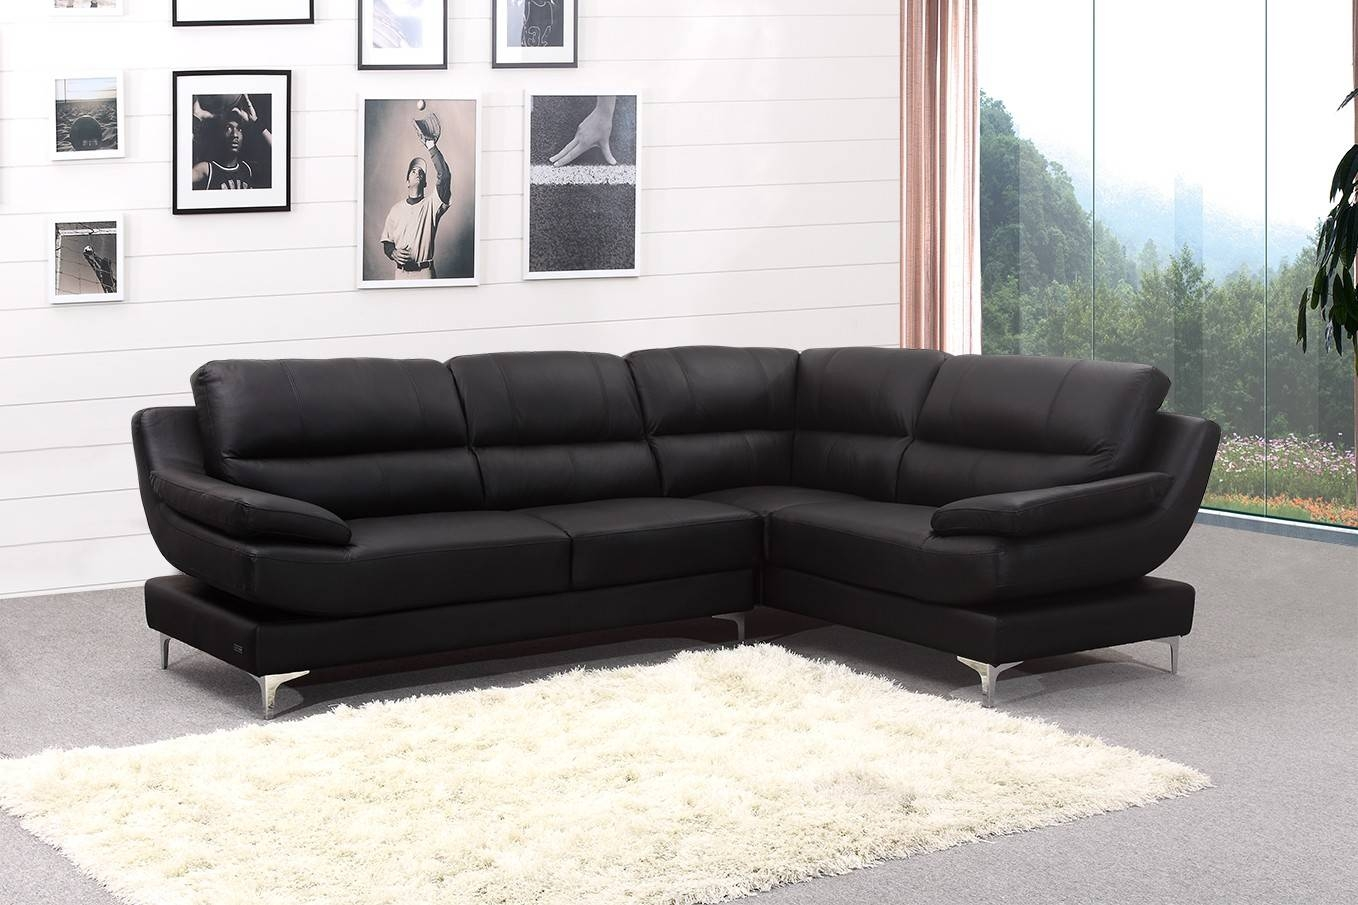 Brilliant Leather Corner Sofa Leather Corner Sofas Groups In A with Large Black Leather Corner Sofas (Image 5 of 30)